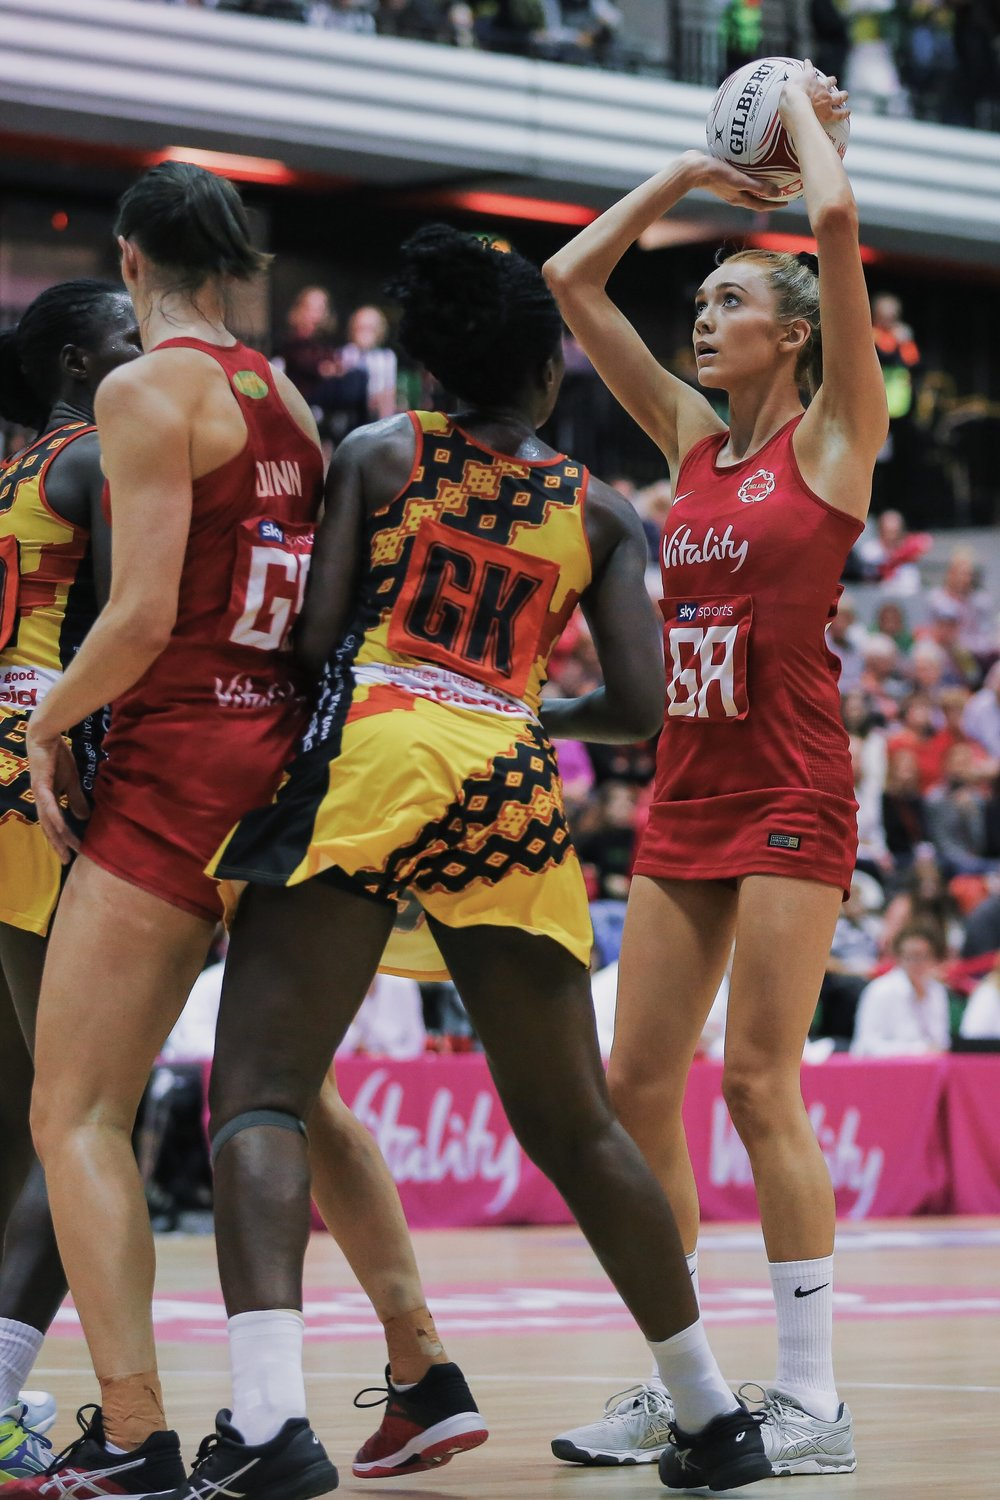 womens-netball-sport-england-uganda-international-series-16.jpg